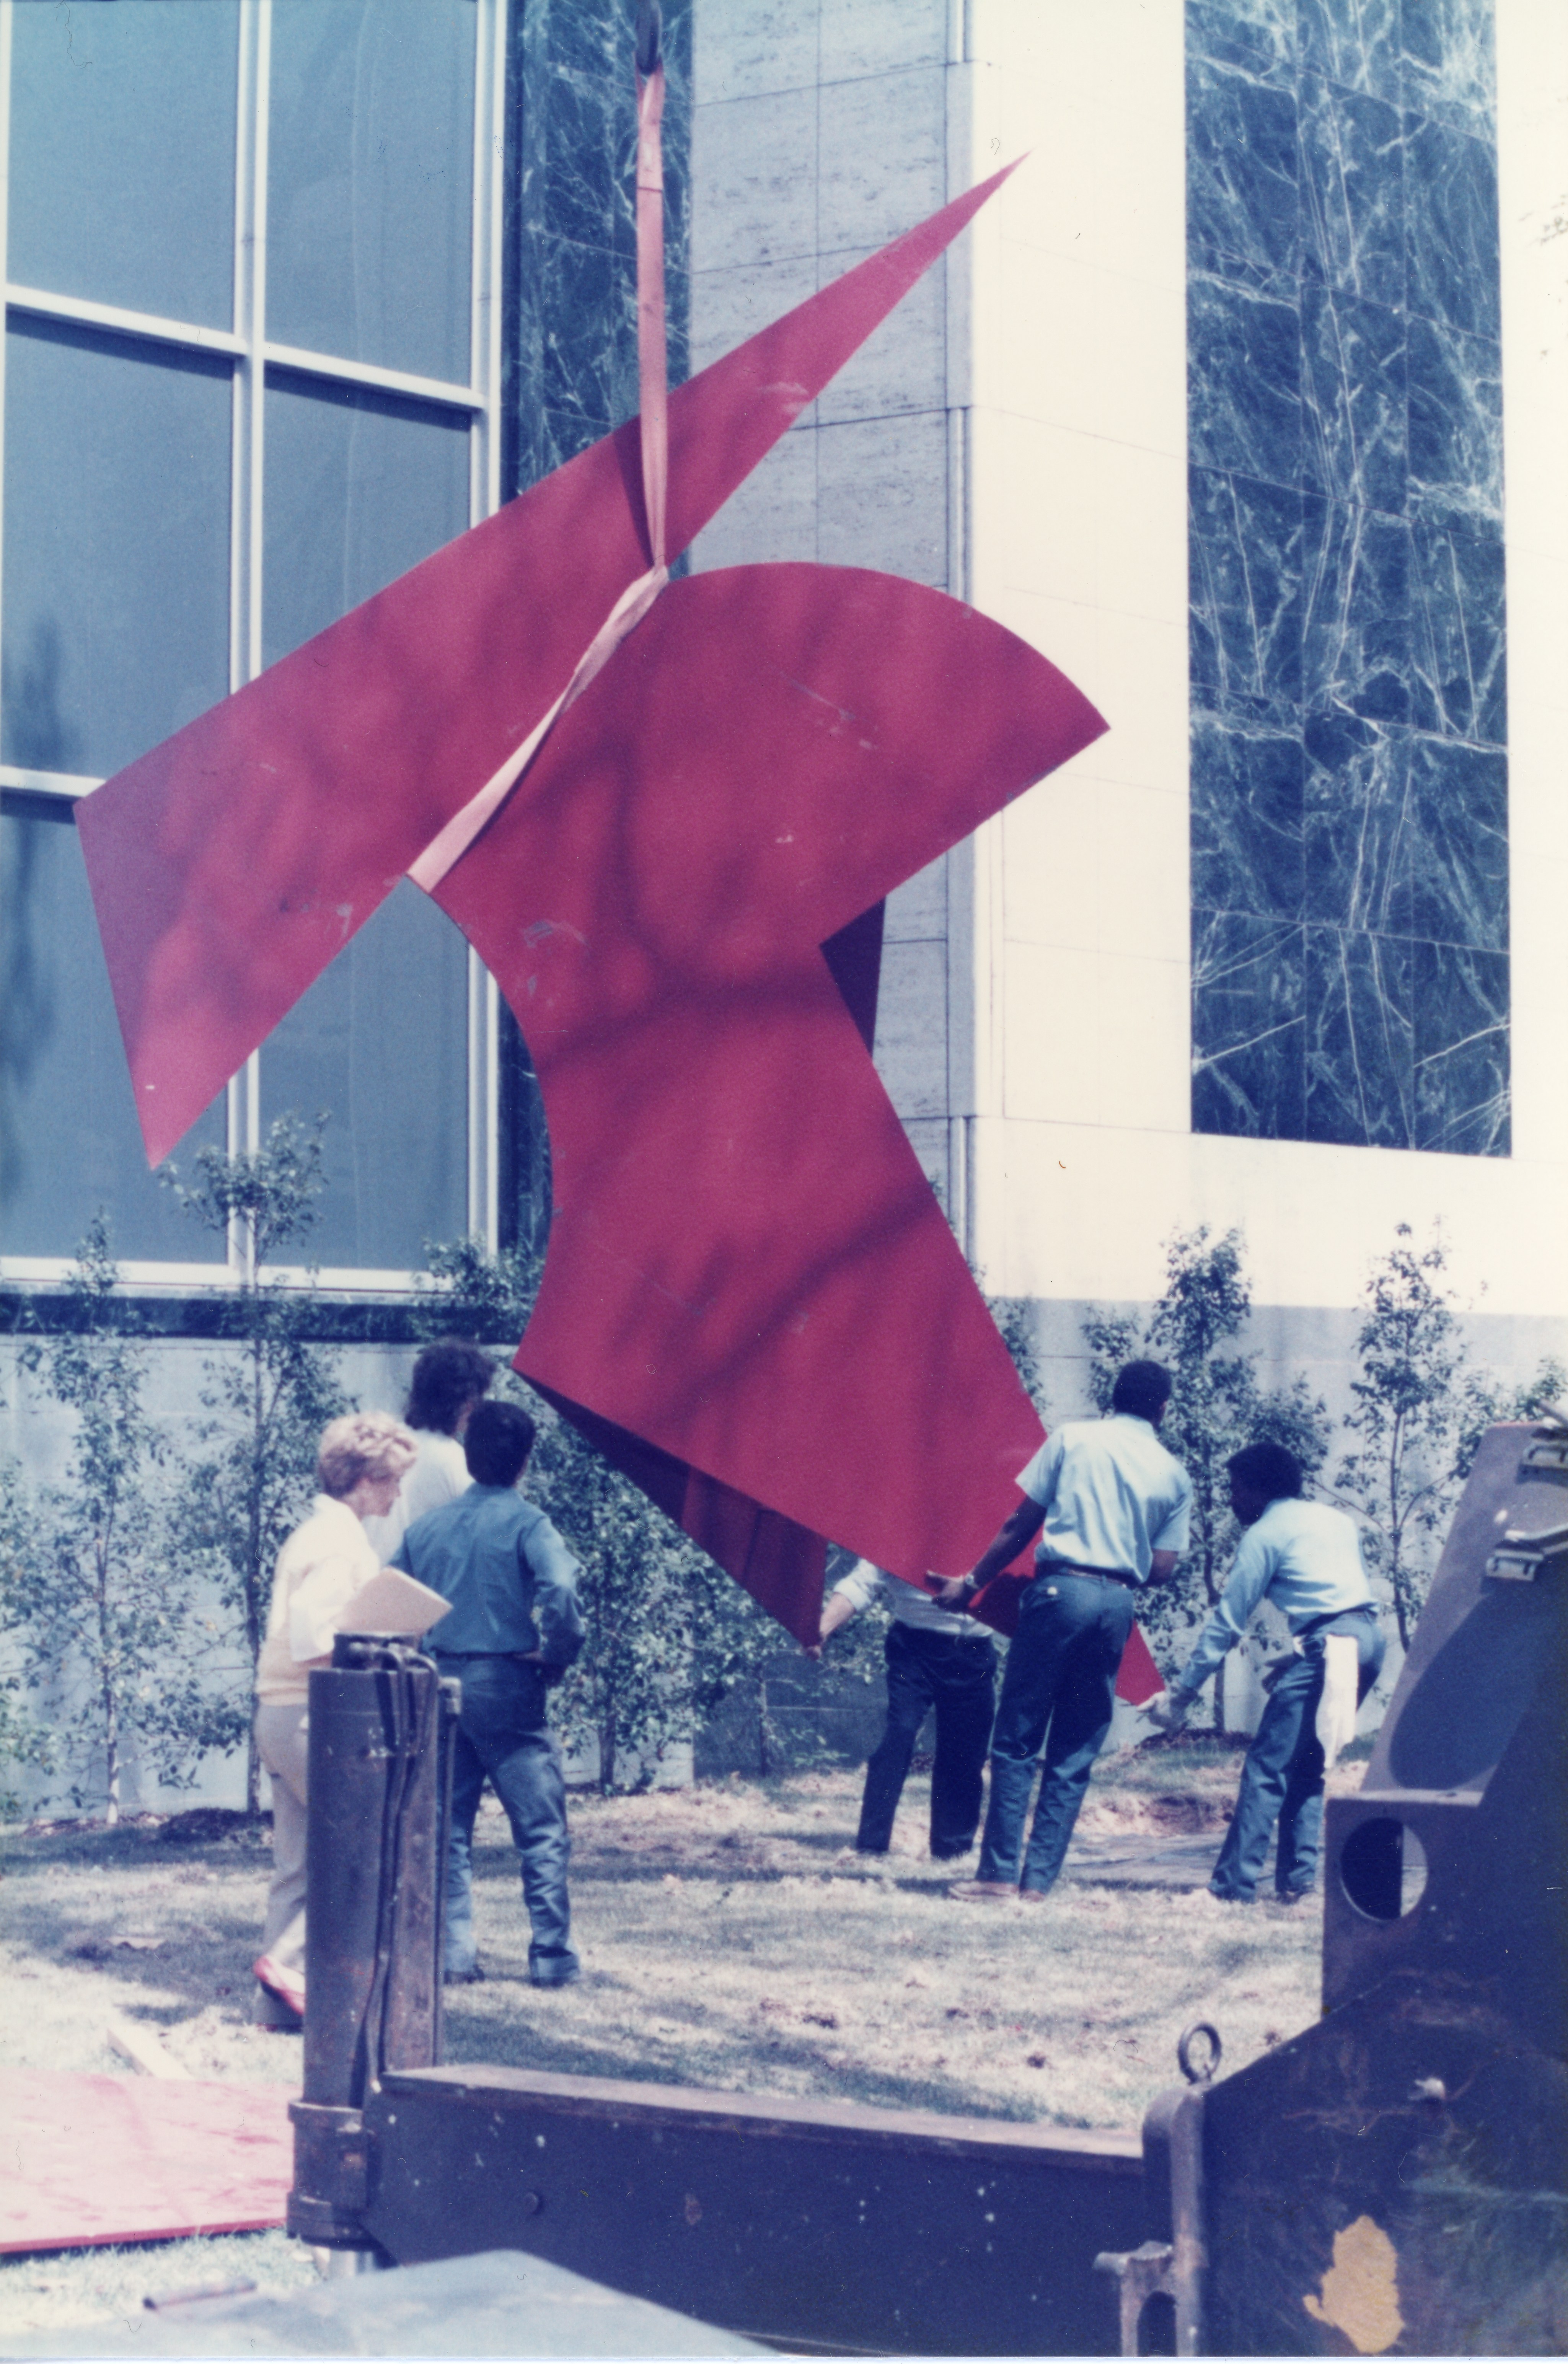 A crane lowers components of Kaikoo II onto the ground outside the Museum on April 25, 1986. Image from the Birmingham Museum of Art archive.